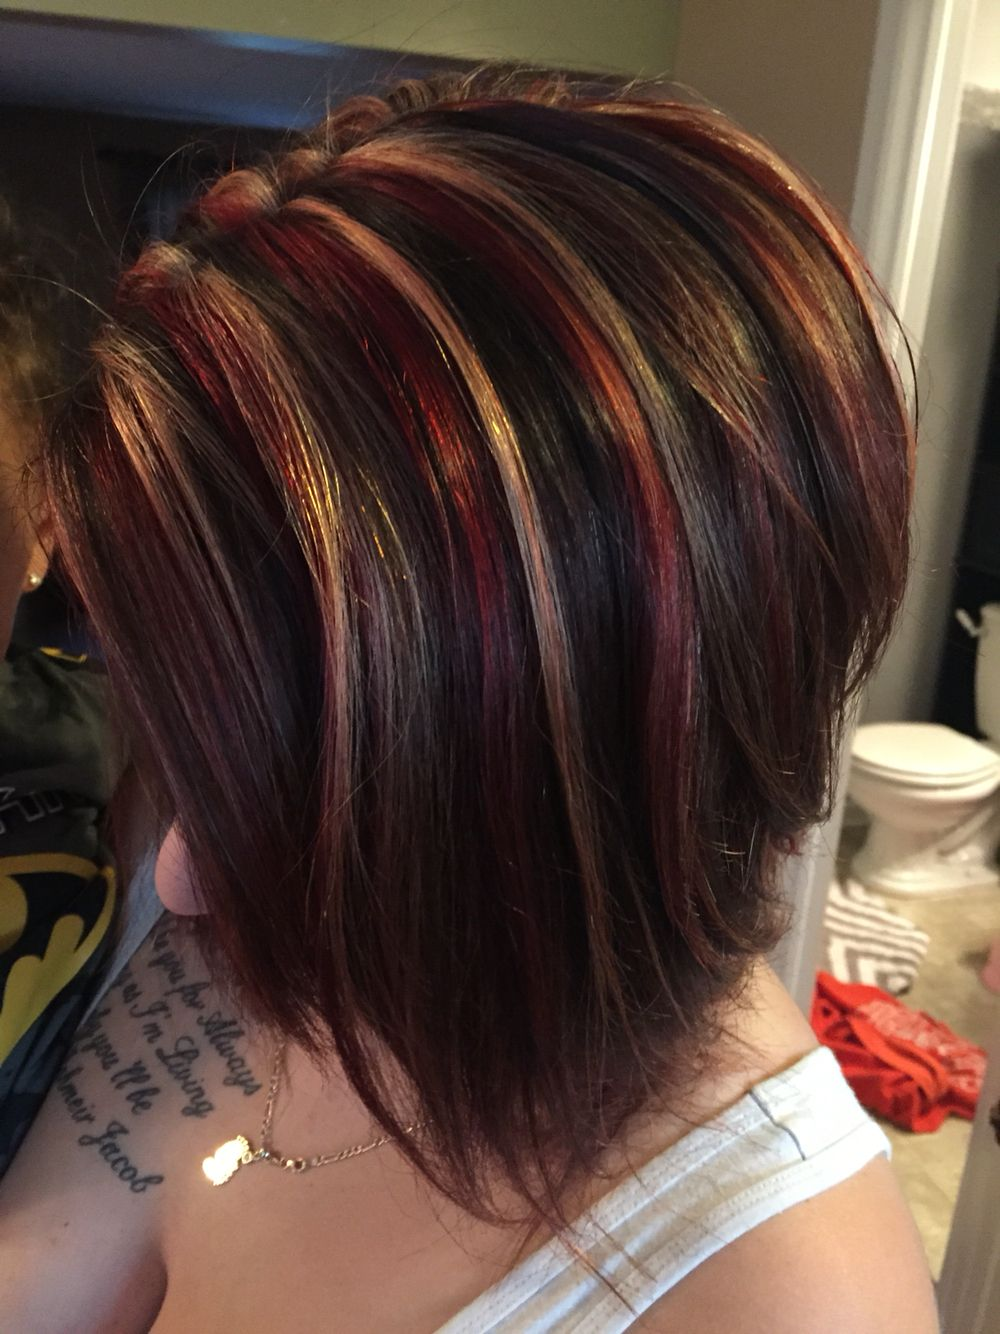 Red blonde chunky highlight on dark base hair color in